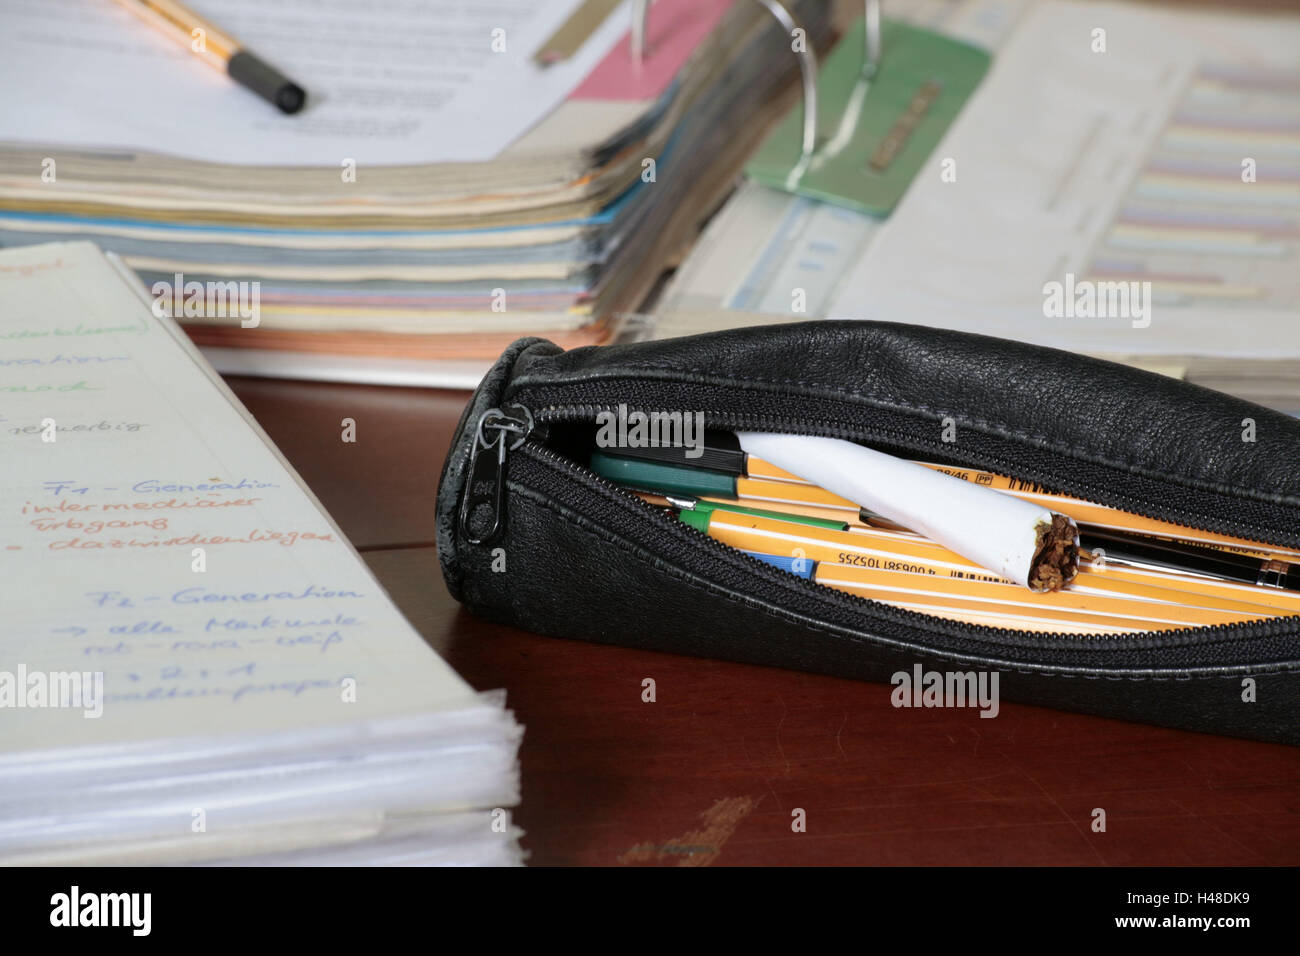 School, school desk, feather case, openly, pens, joint, briefcases, medium close-up, youth, drug, school everyday - Stock Image